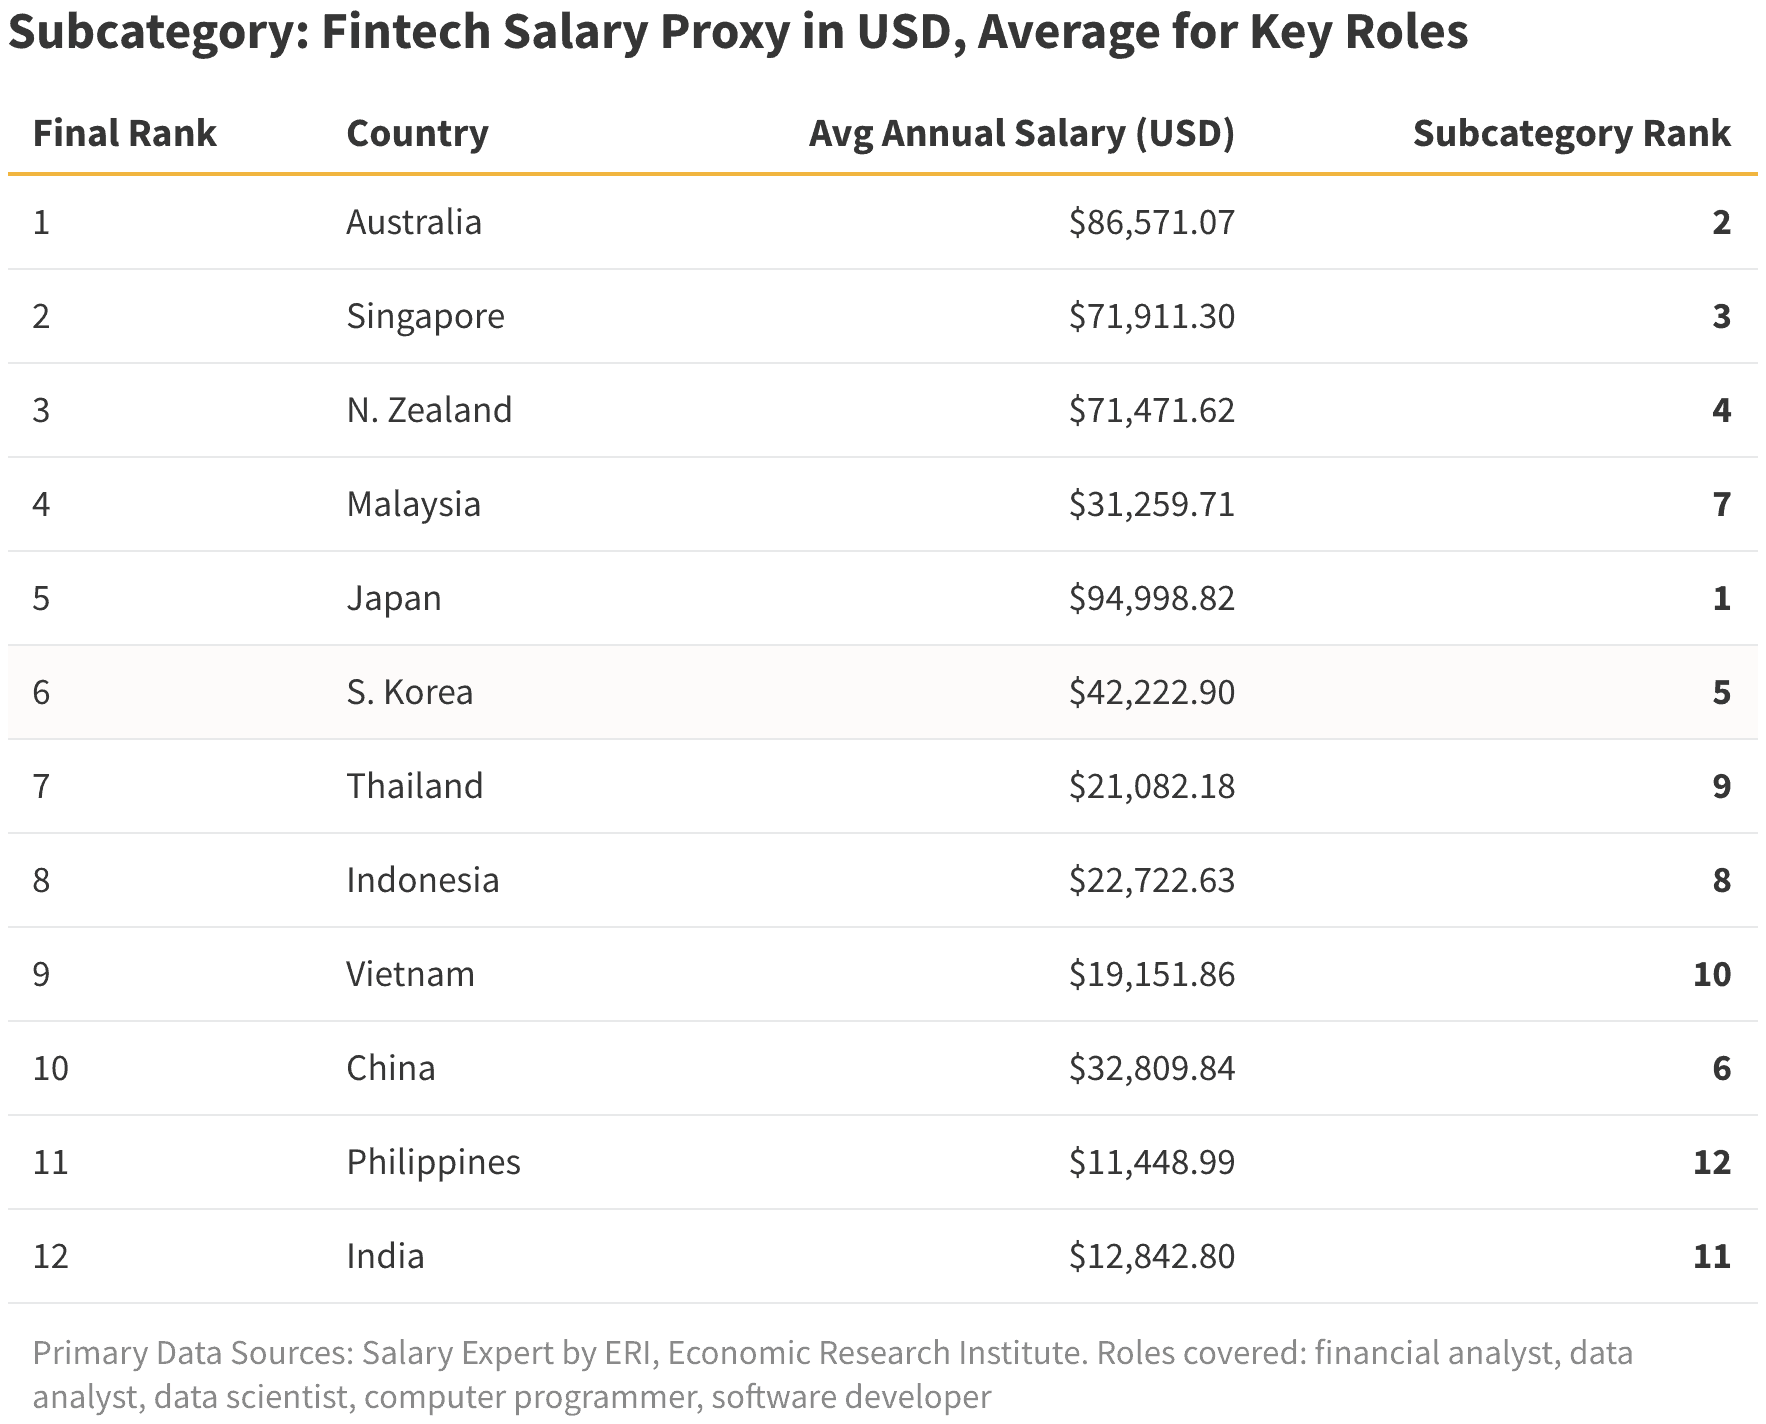 ValueChampion Subcategory Fintech Salary Proxy in USD Average for Key Roles